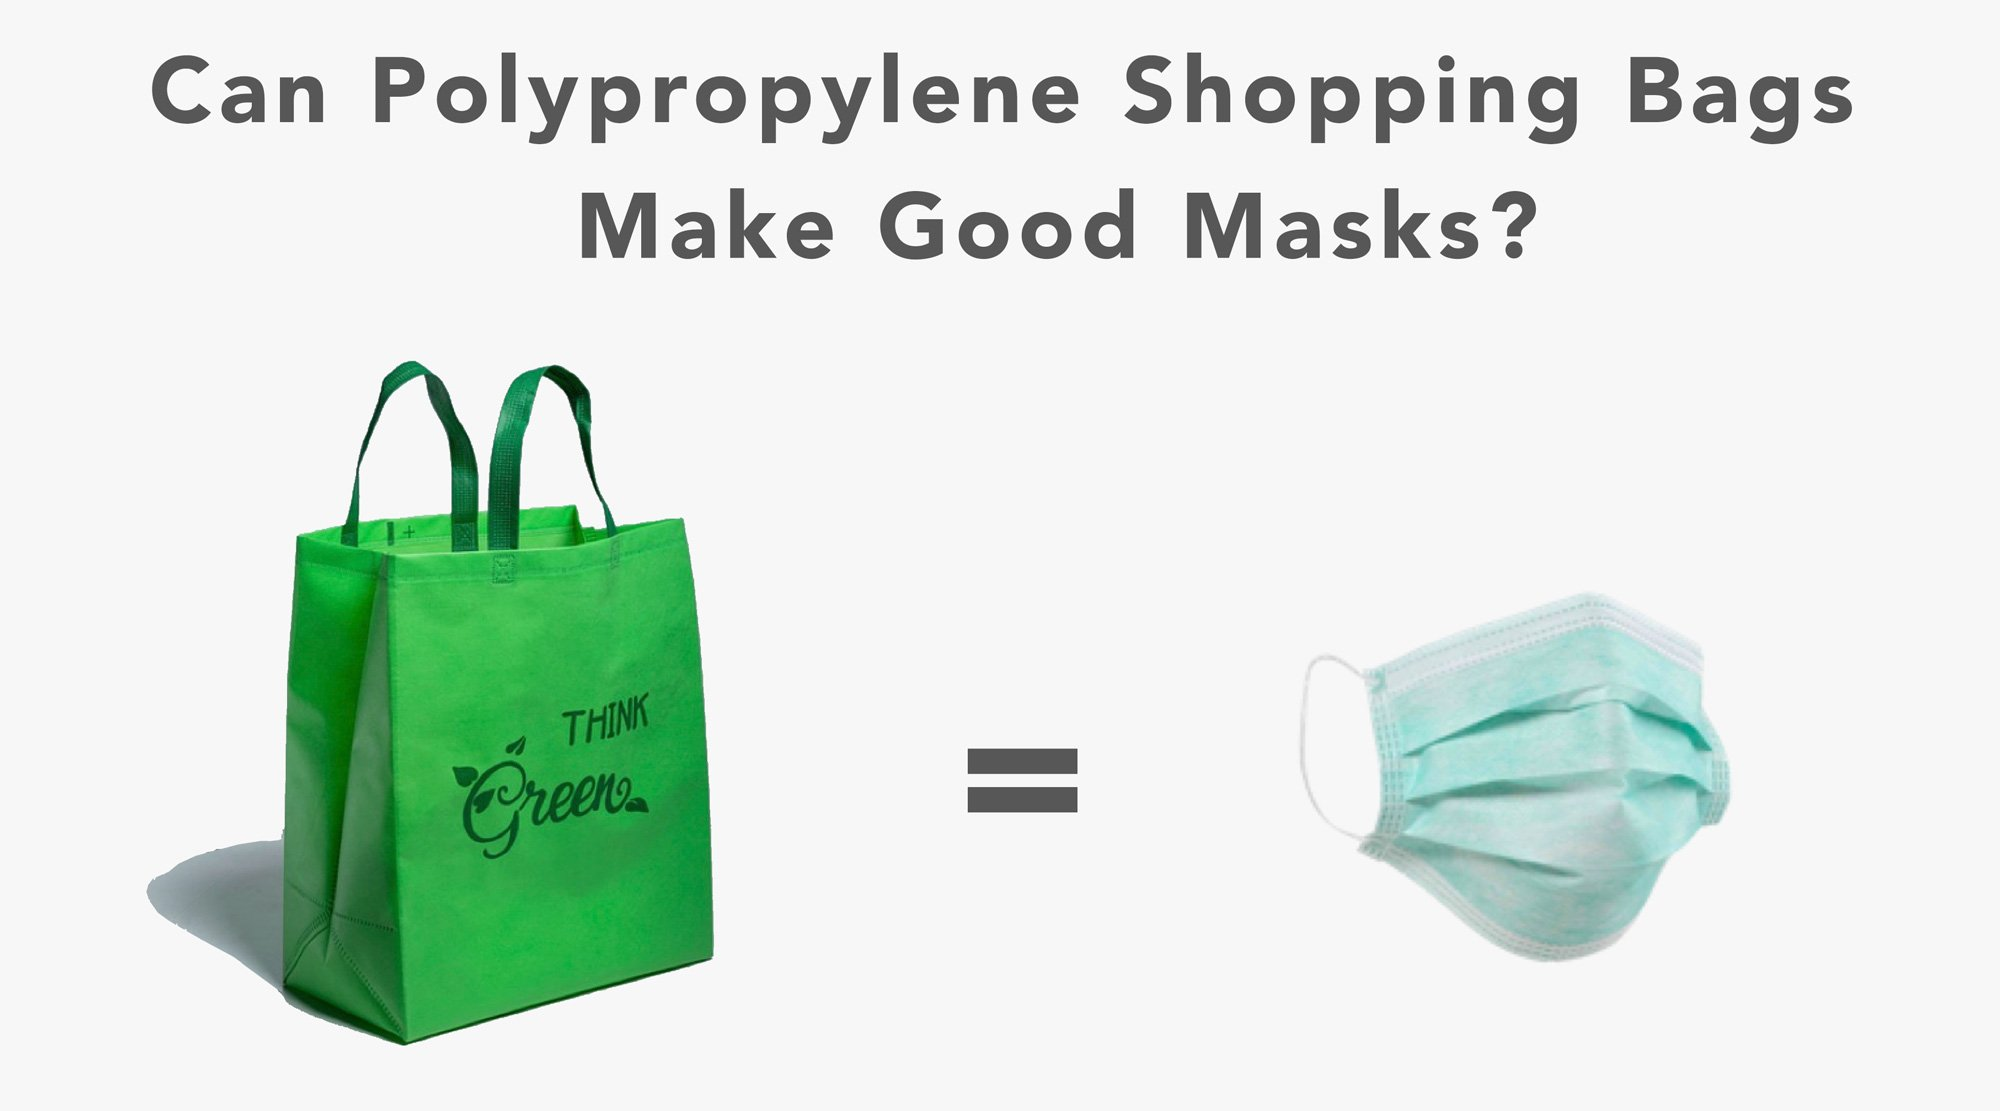 Can Polypropylene Bags be Used to Make Effective and Breathable Homemade DIY Masks